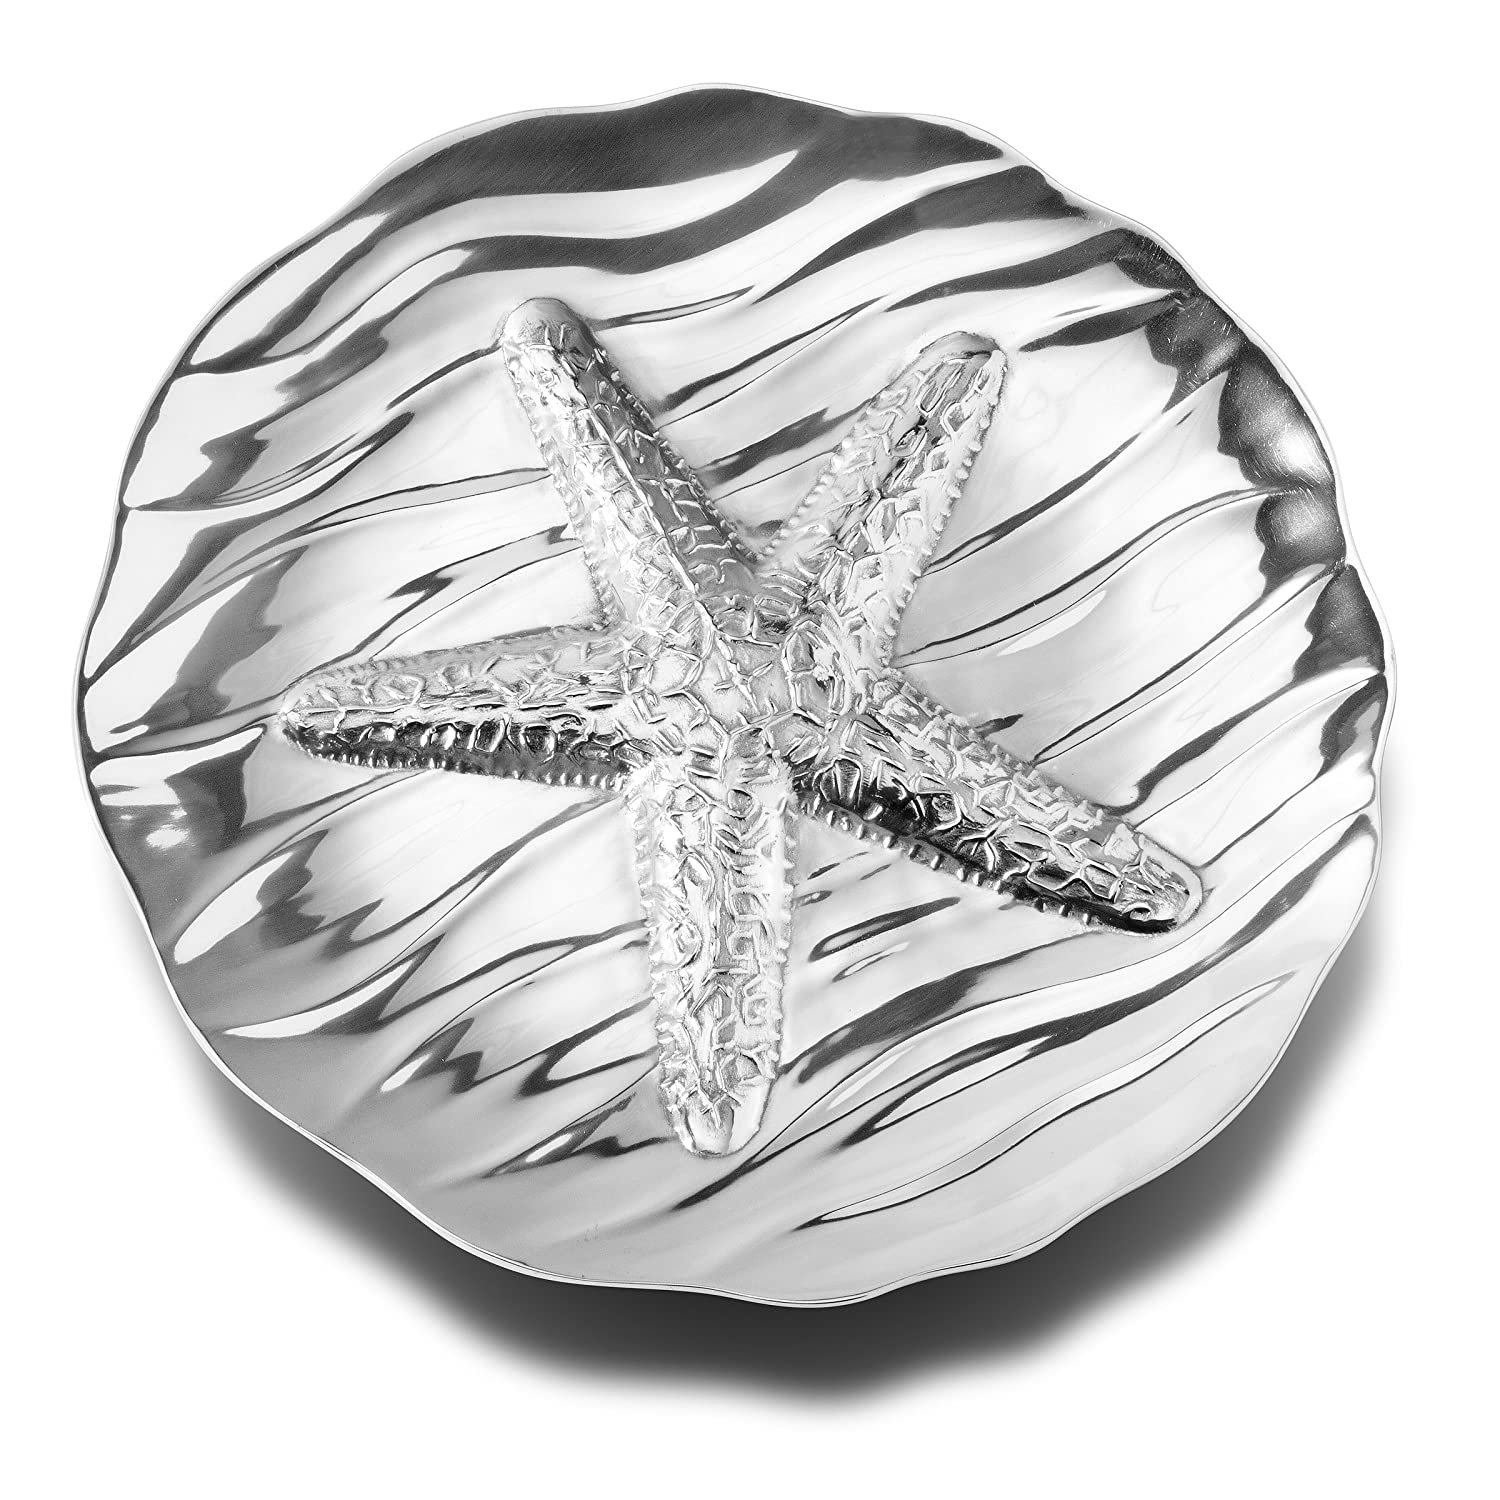 Coastal Christmas Tablescape Décor - Sea life starfish aluminum alloy large round serving tray by Designer Wilton Armetale